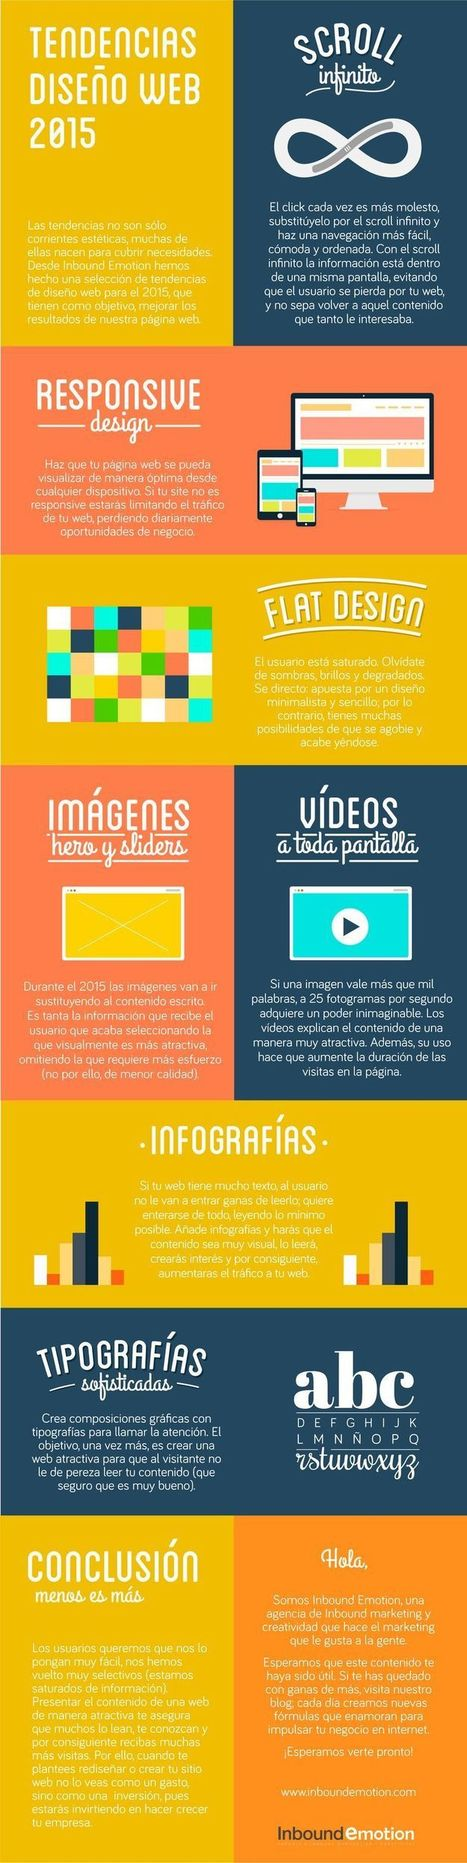 Tendencias en Diseño Web para 2015 #infografia #infographic #design | Seo, Social Media Marketing | Scoop.it